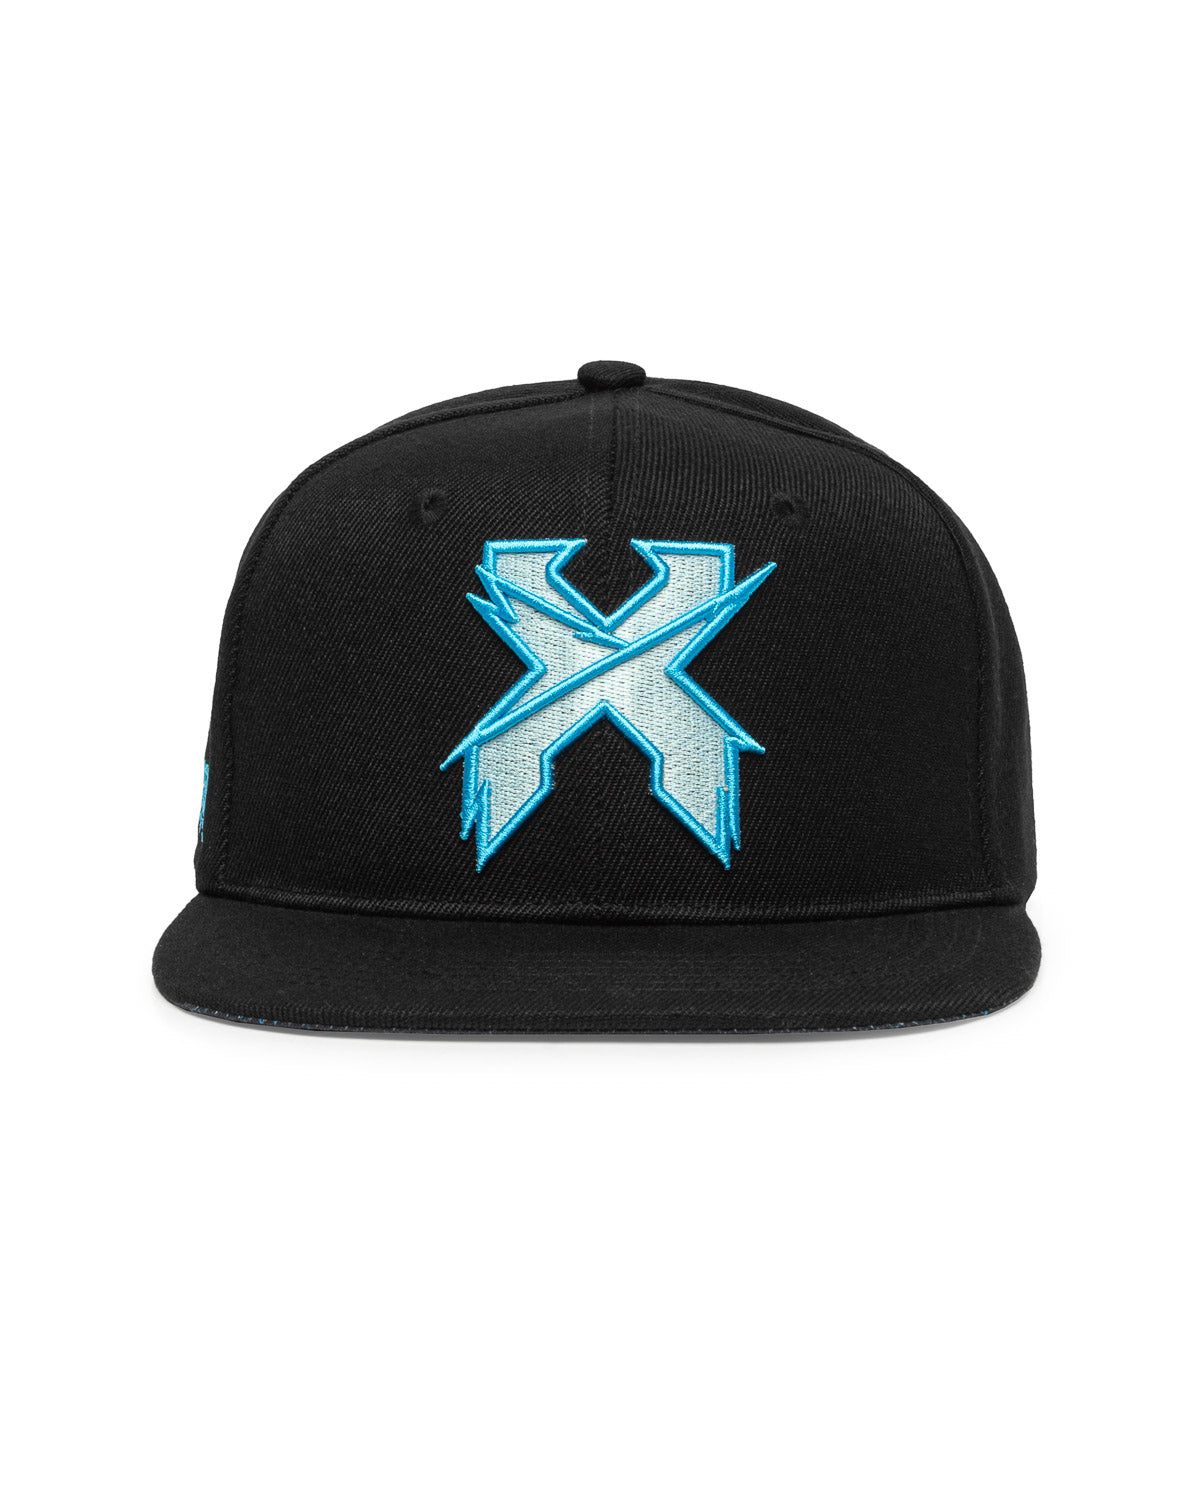 Excision 'UV Rex' Snapback - Black/Blue